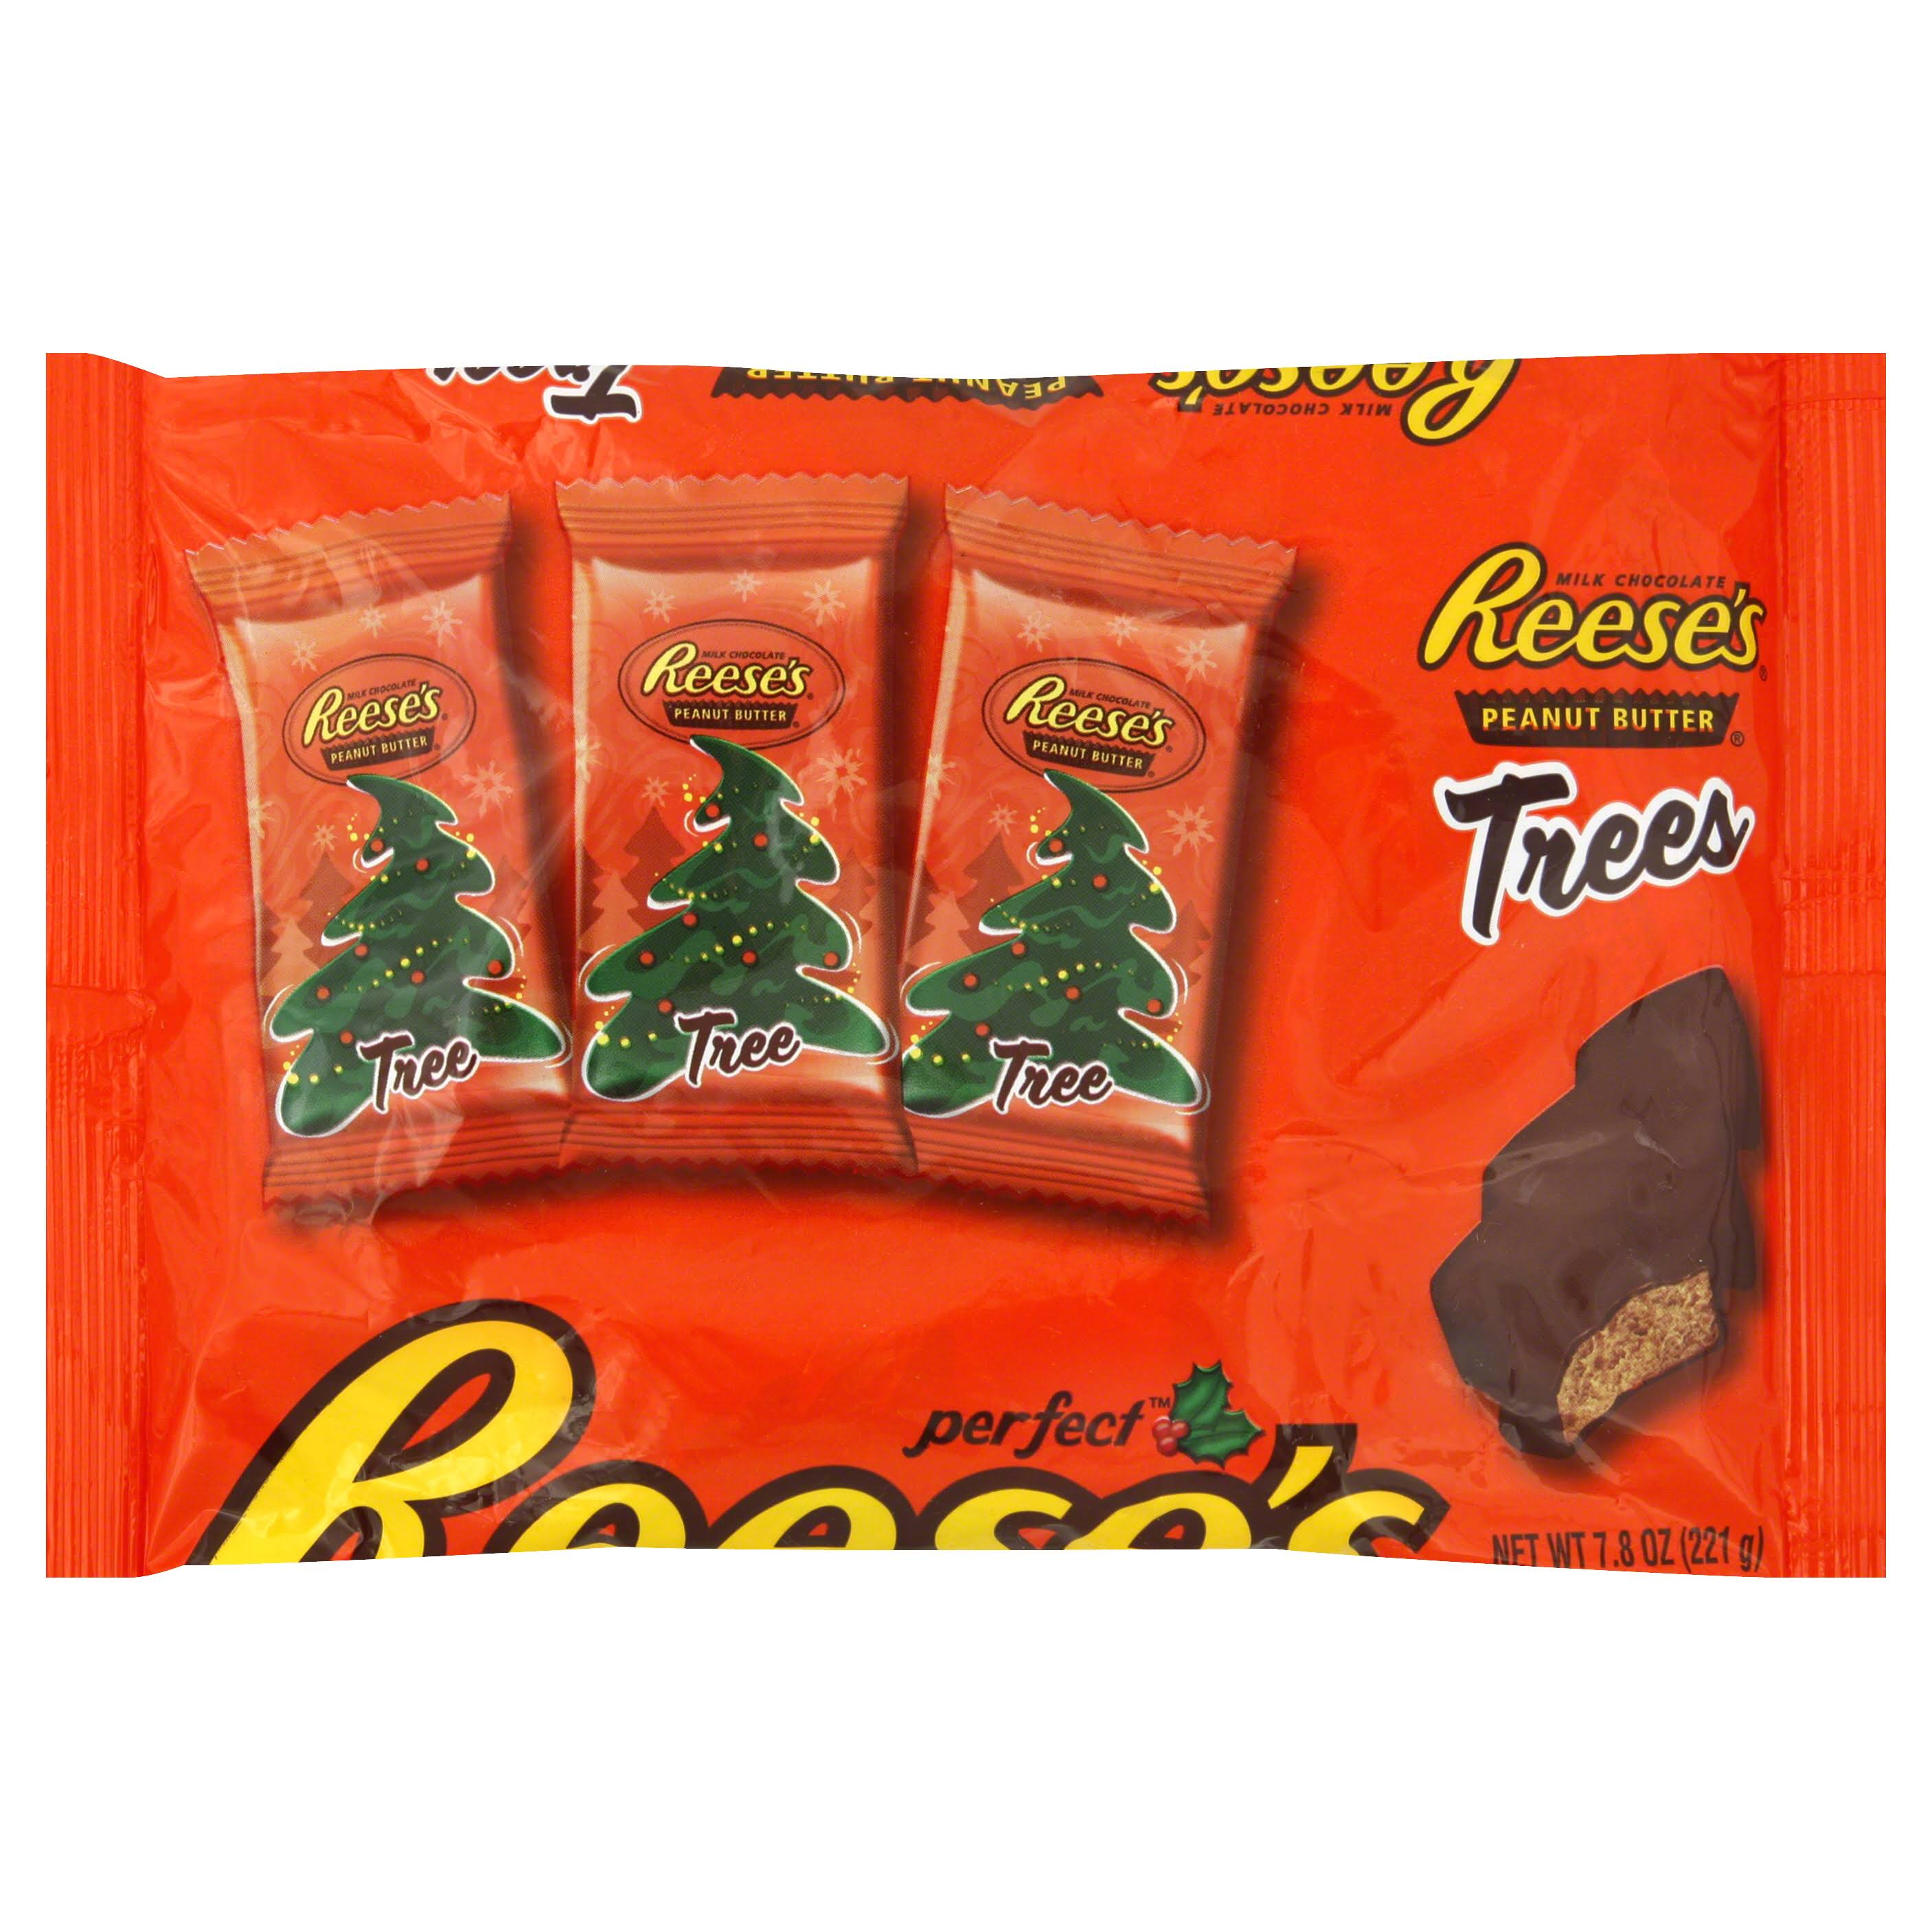 Reeses Trees Milk Chocolate - Peanut Butter, 7.8oz